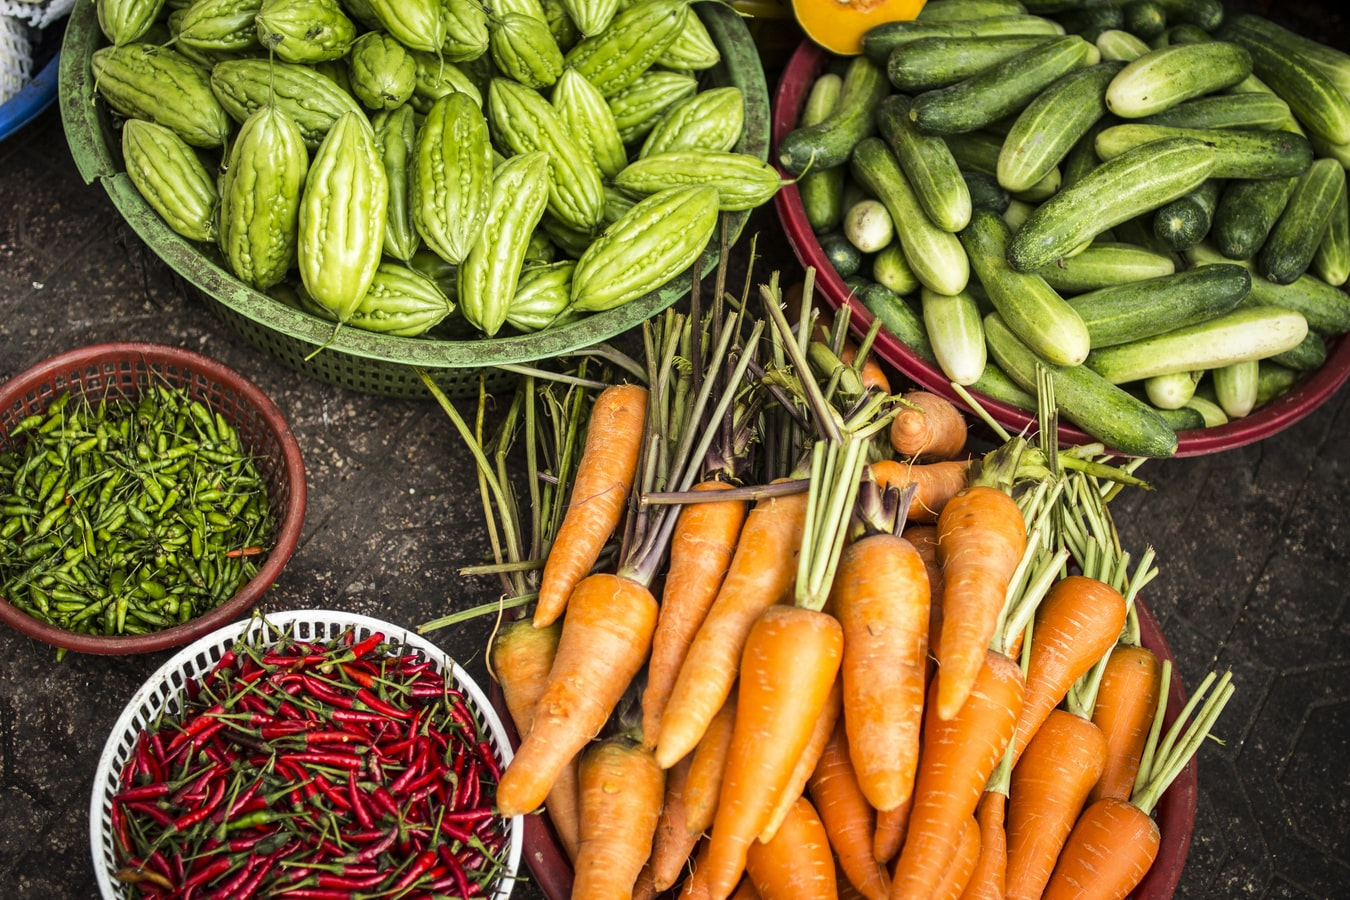 Baskets of carrots, cucumbers and vegetable farm